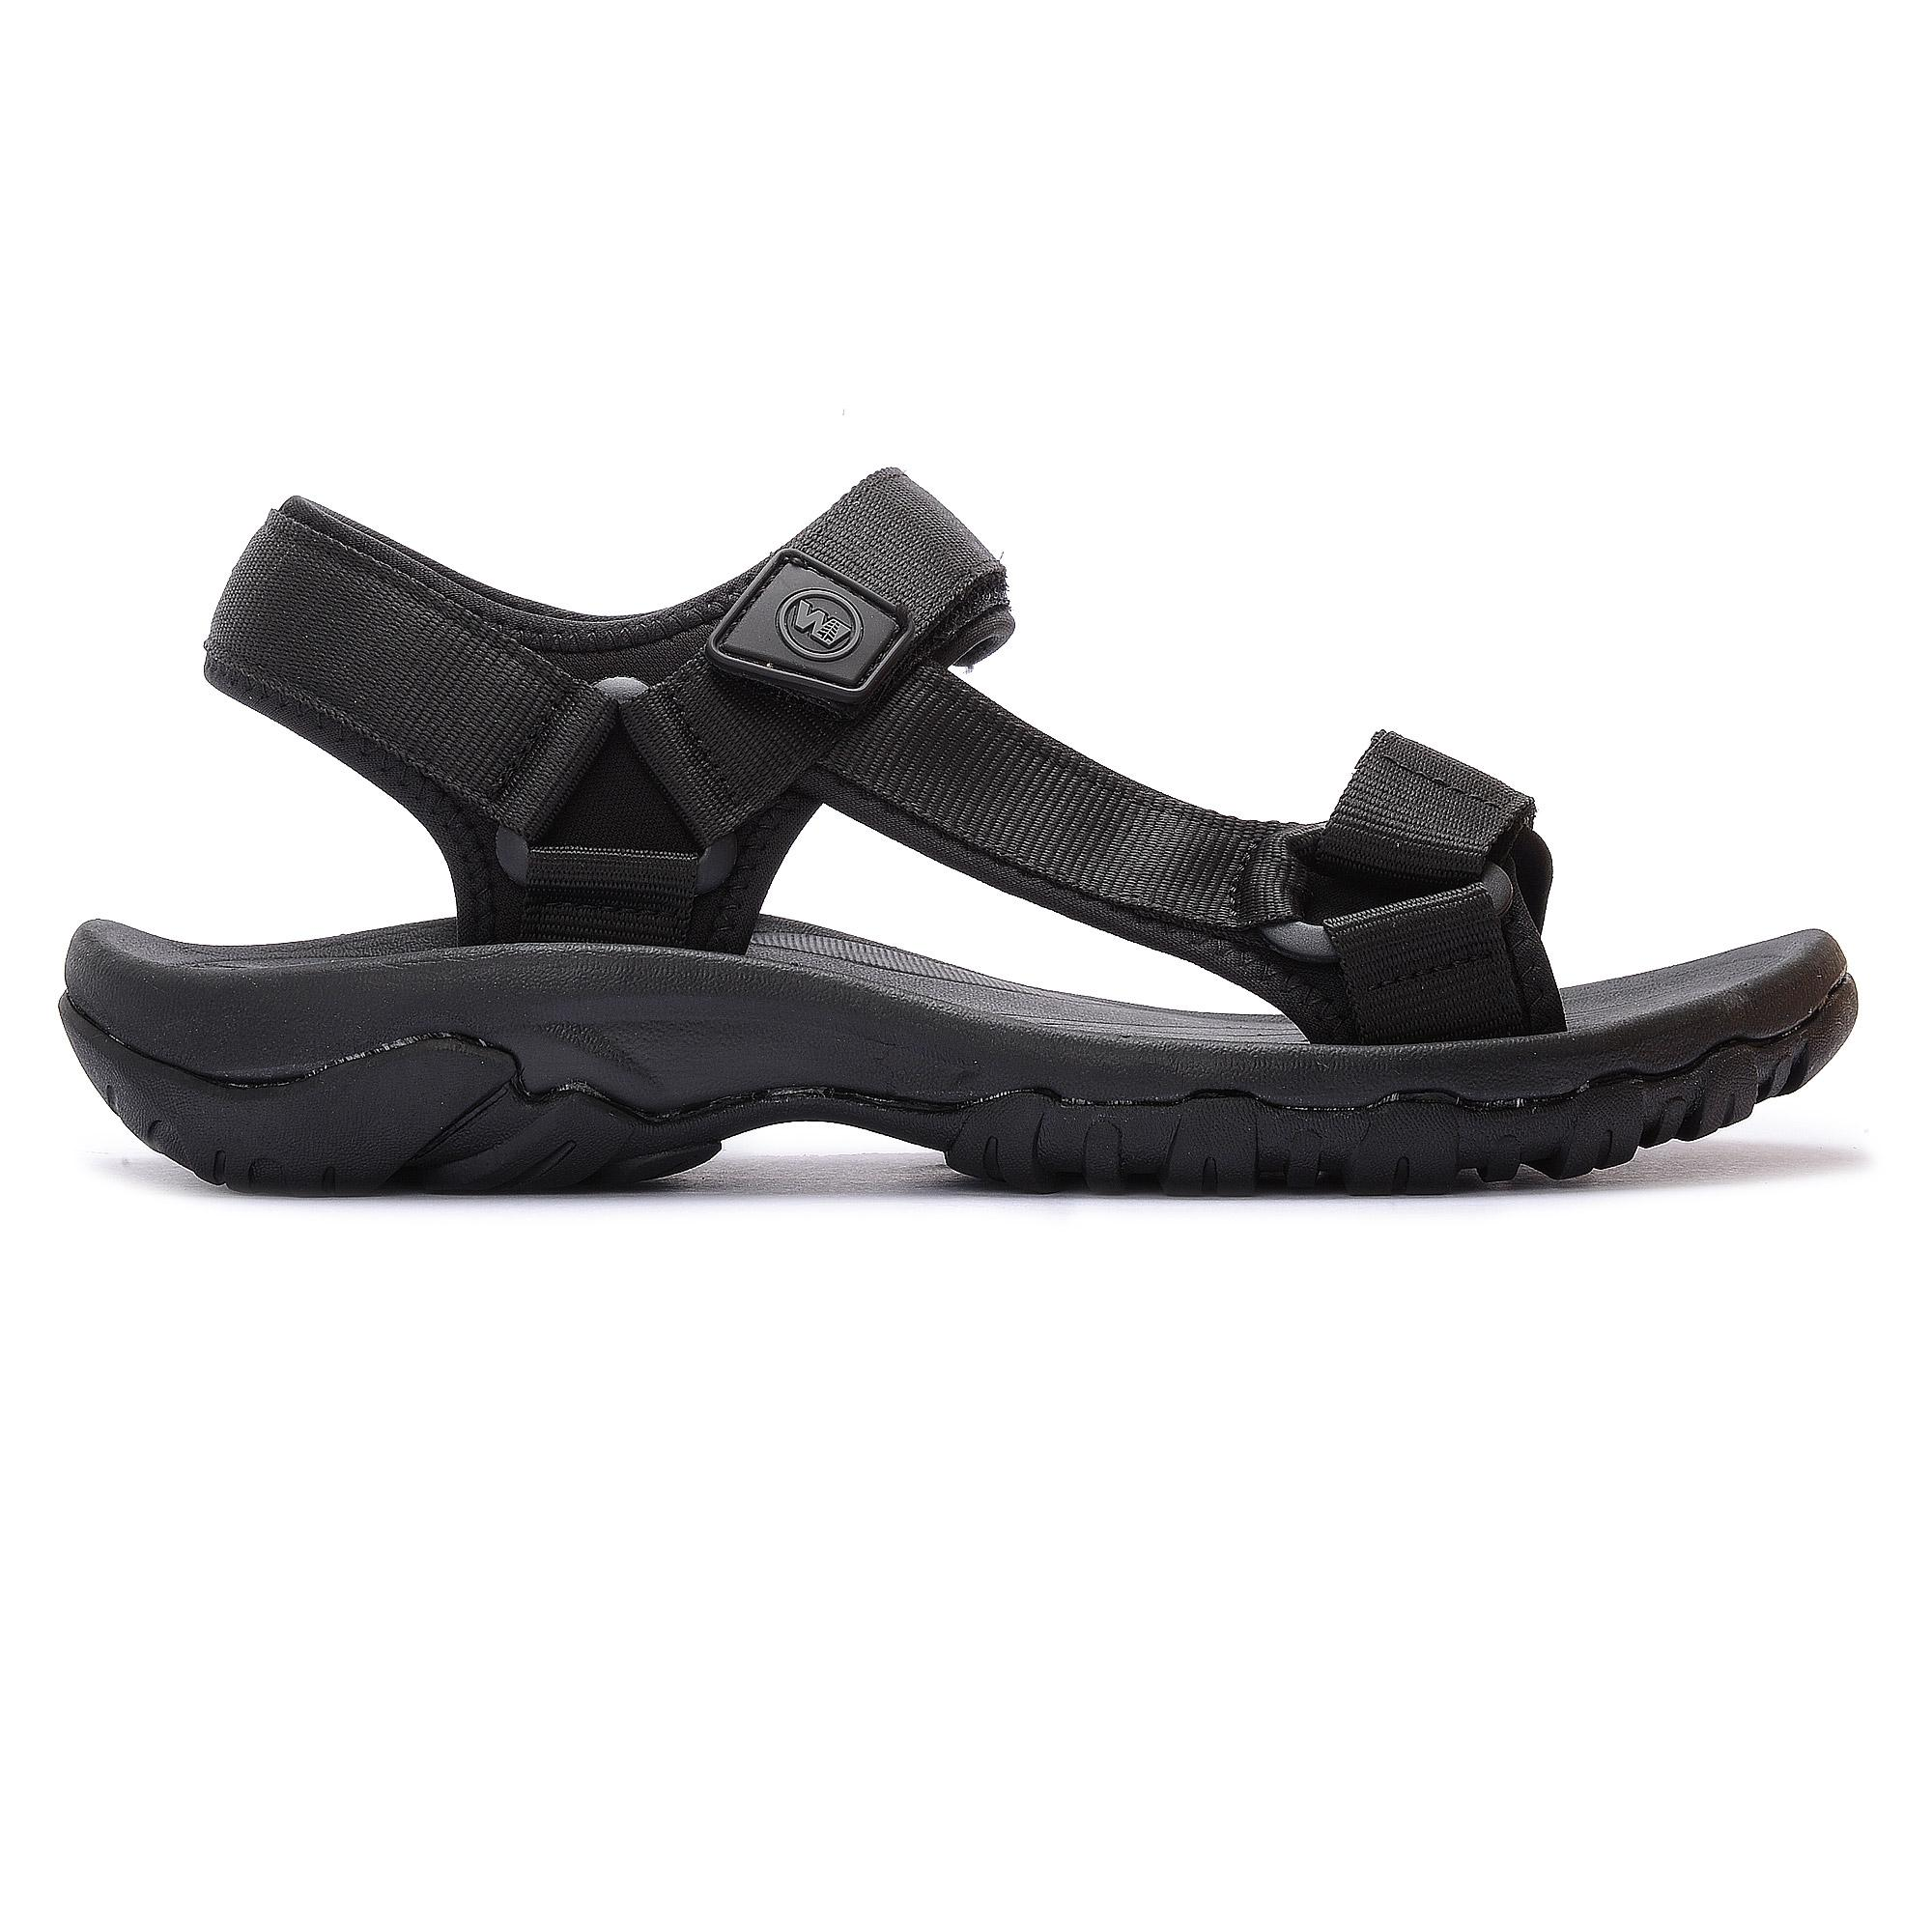 0addfcb14412 WEINBRENNER MEN SANDALS 8696028